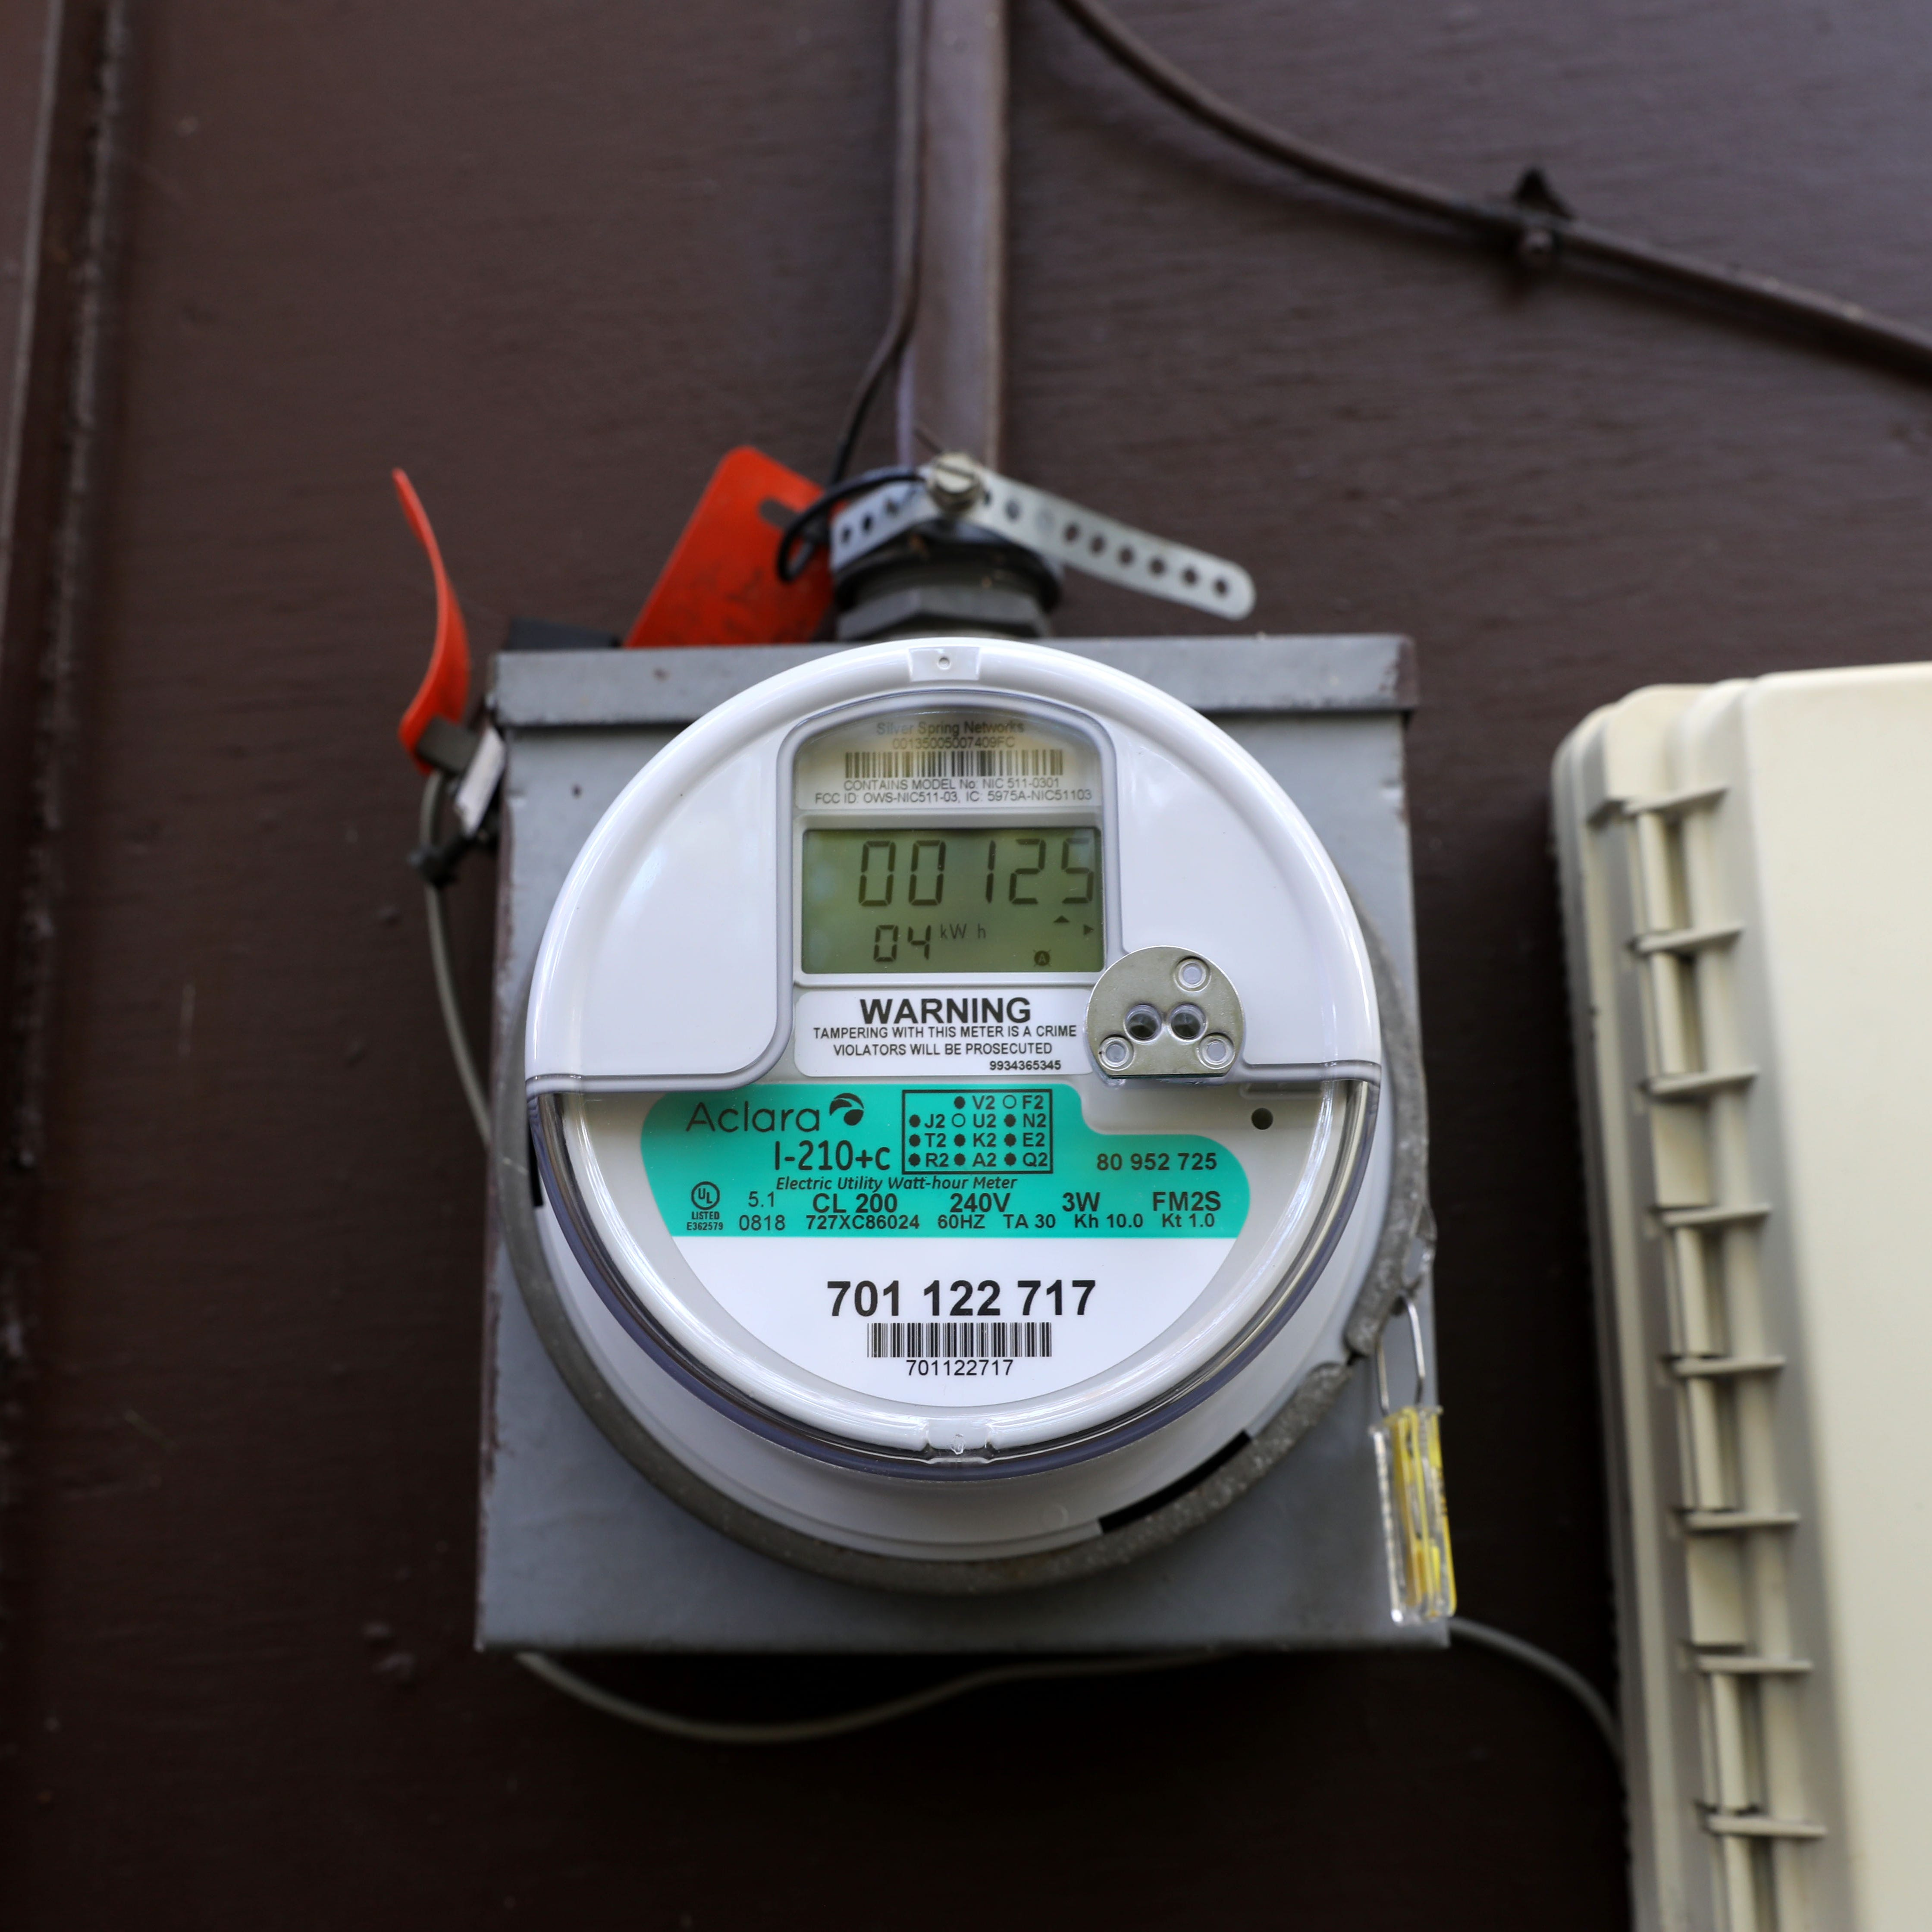 Utility smart meter installations worry Rockland and Westchester homeowners on privacy